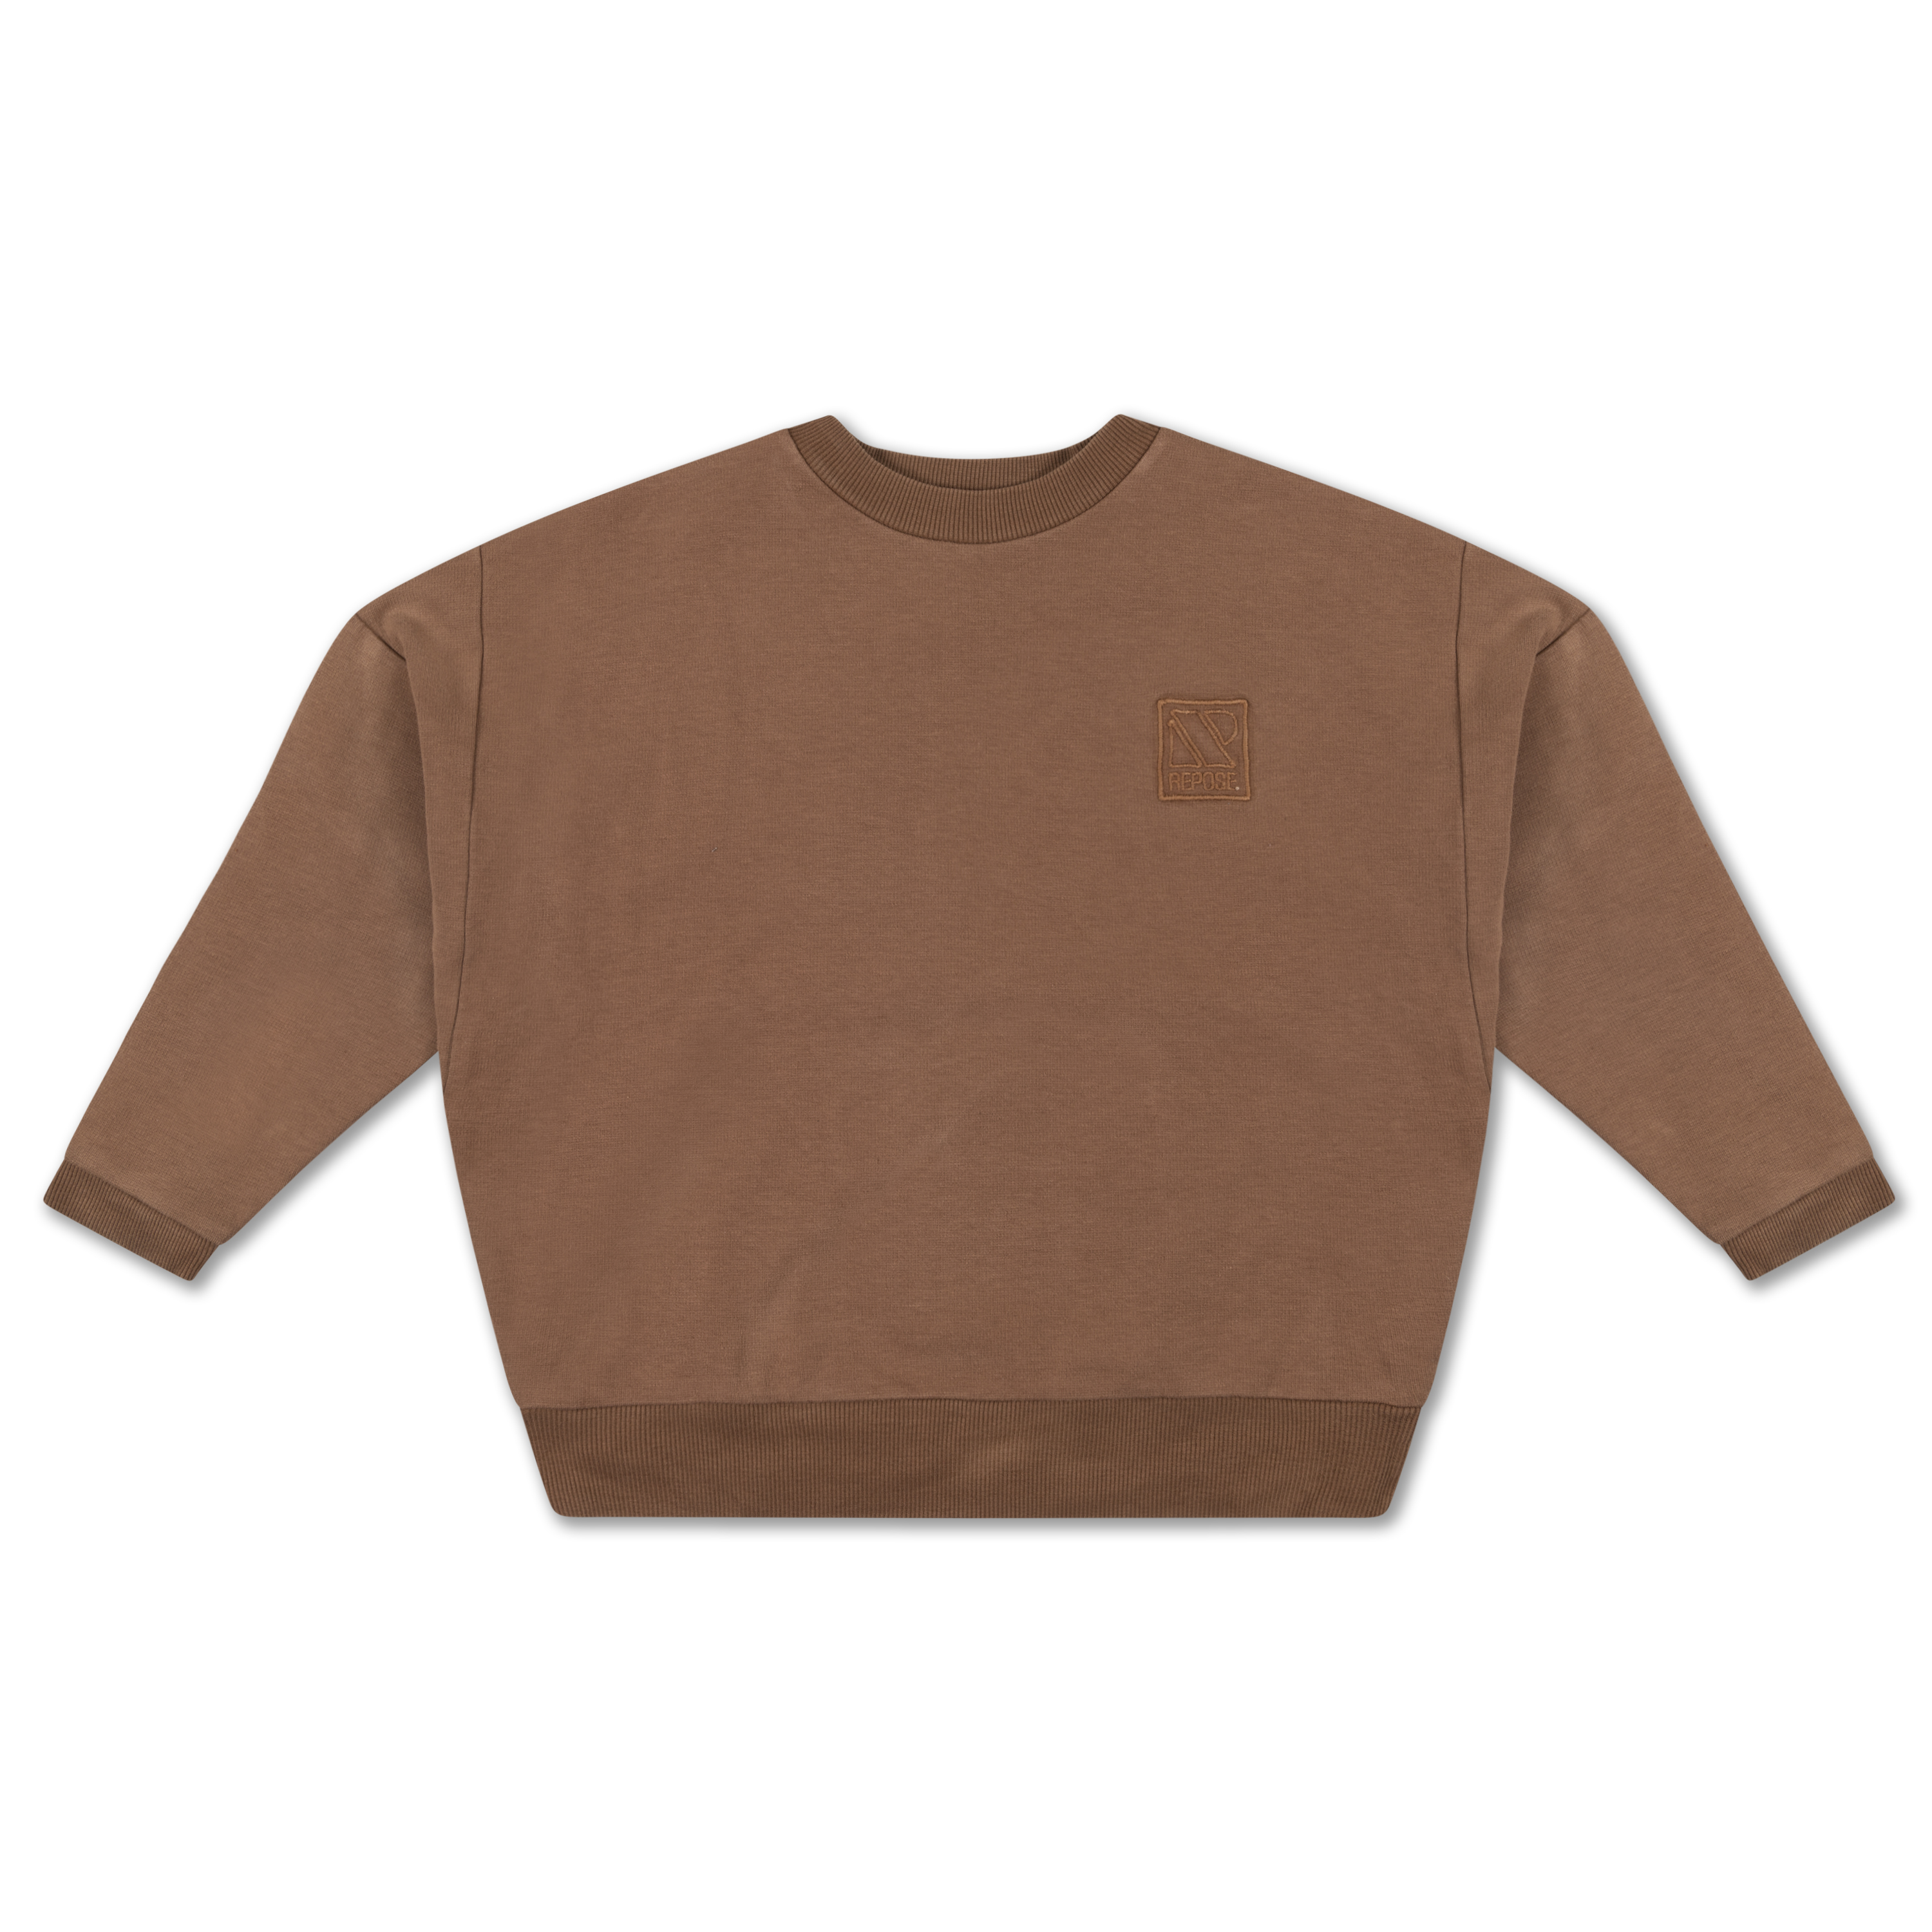 Repose AMS - Crewneck Sweater chocolate brown